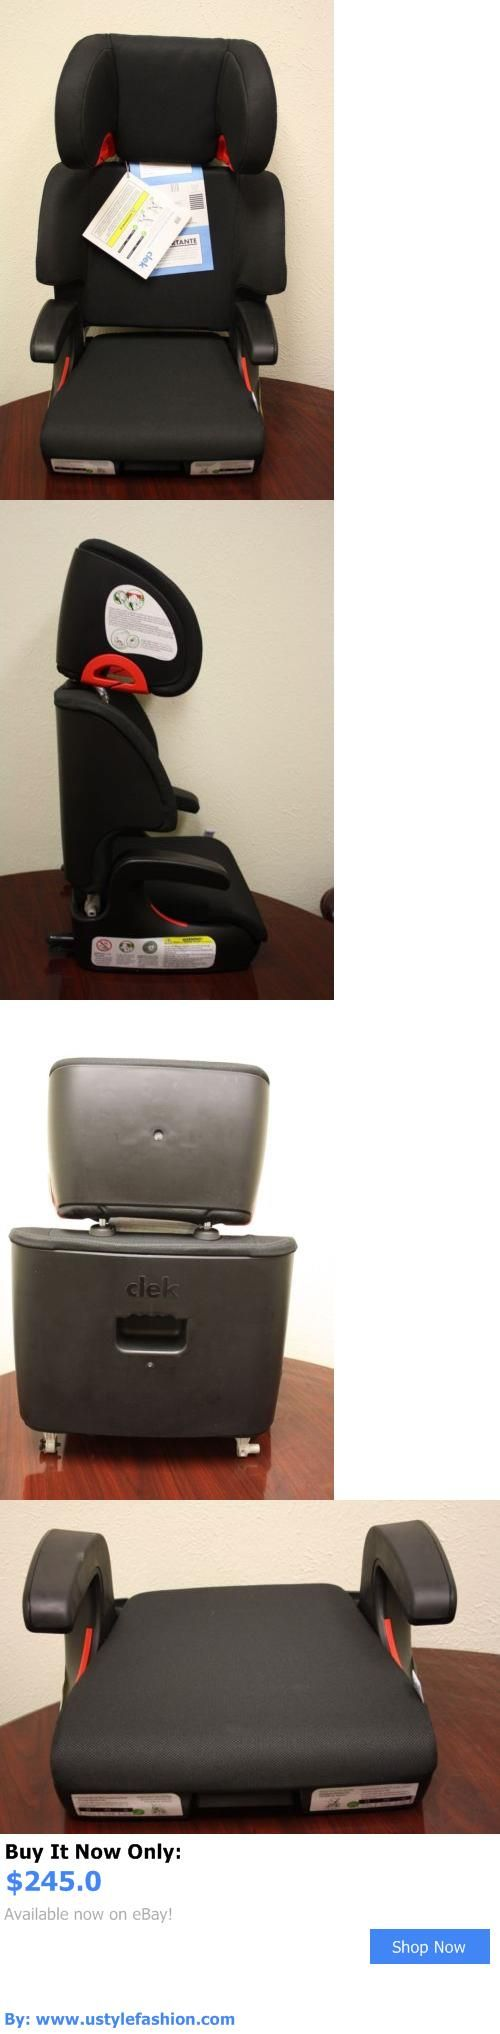 Booster Seats: Clek Oobr Full Back Booster Seat, Drift BUY IT NOW ONLY: $245.0 #ustylefashionBoosterSeats OR #ustylefashion